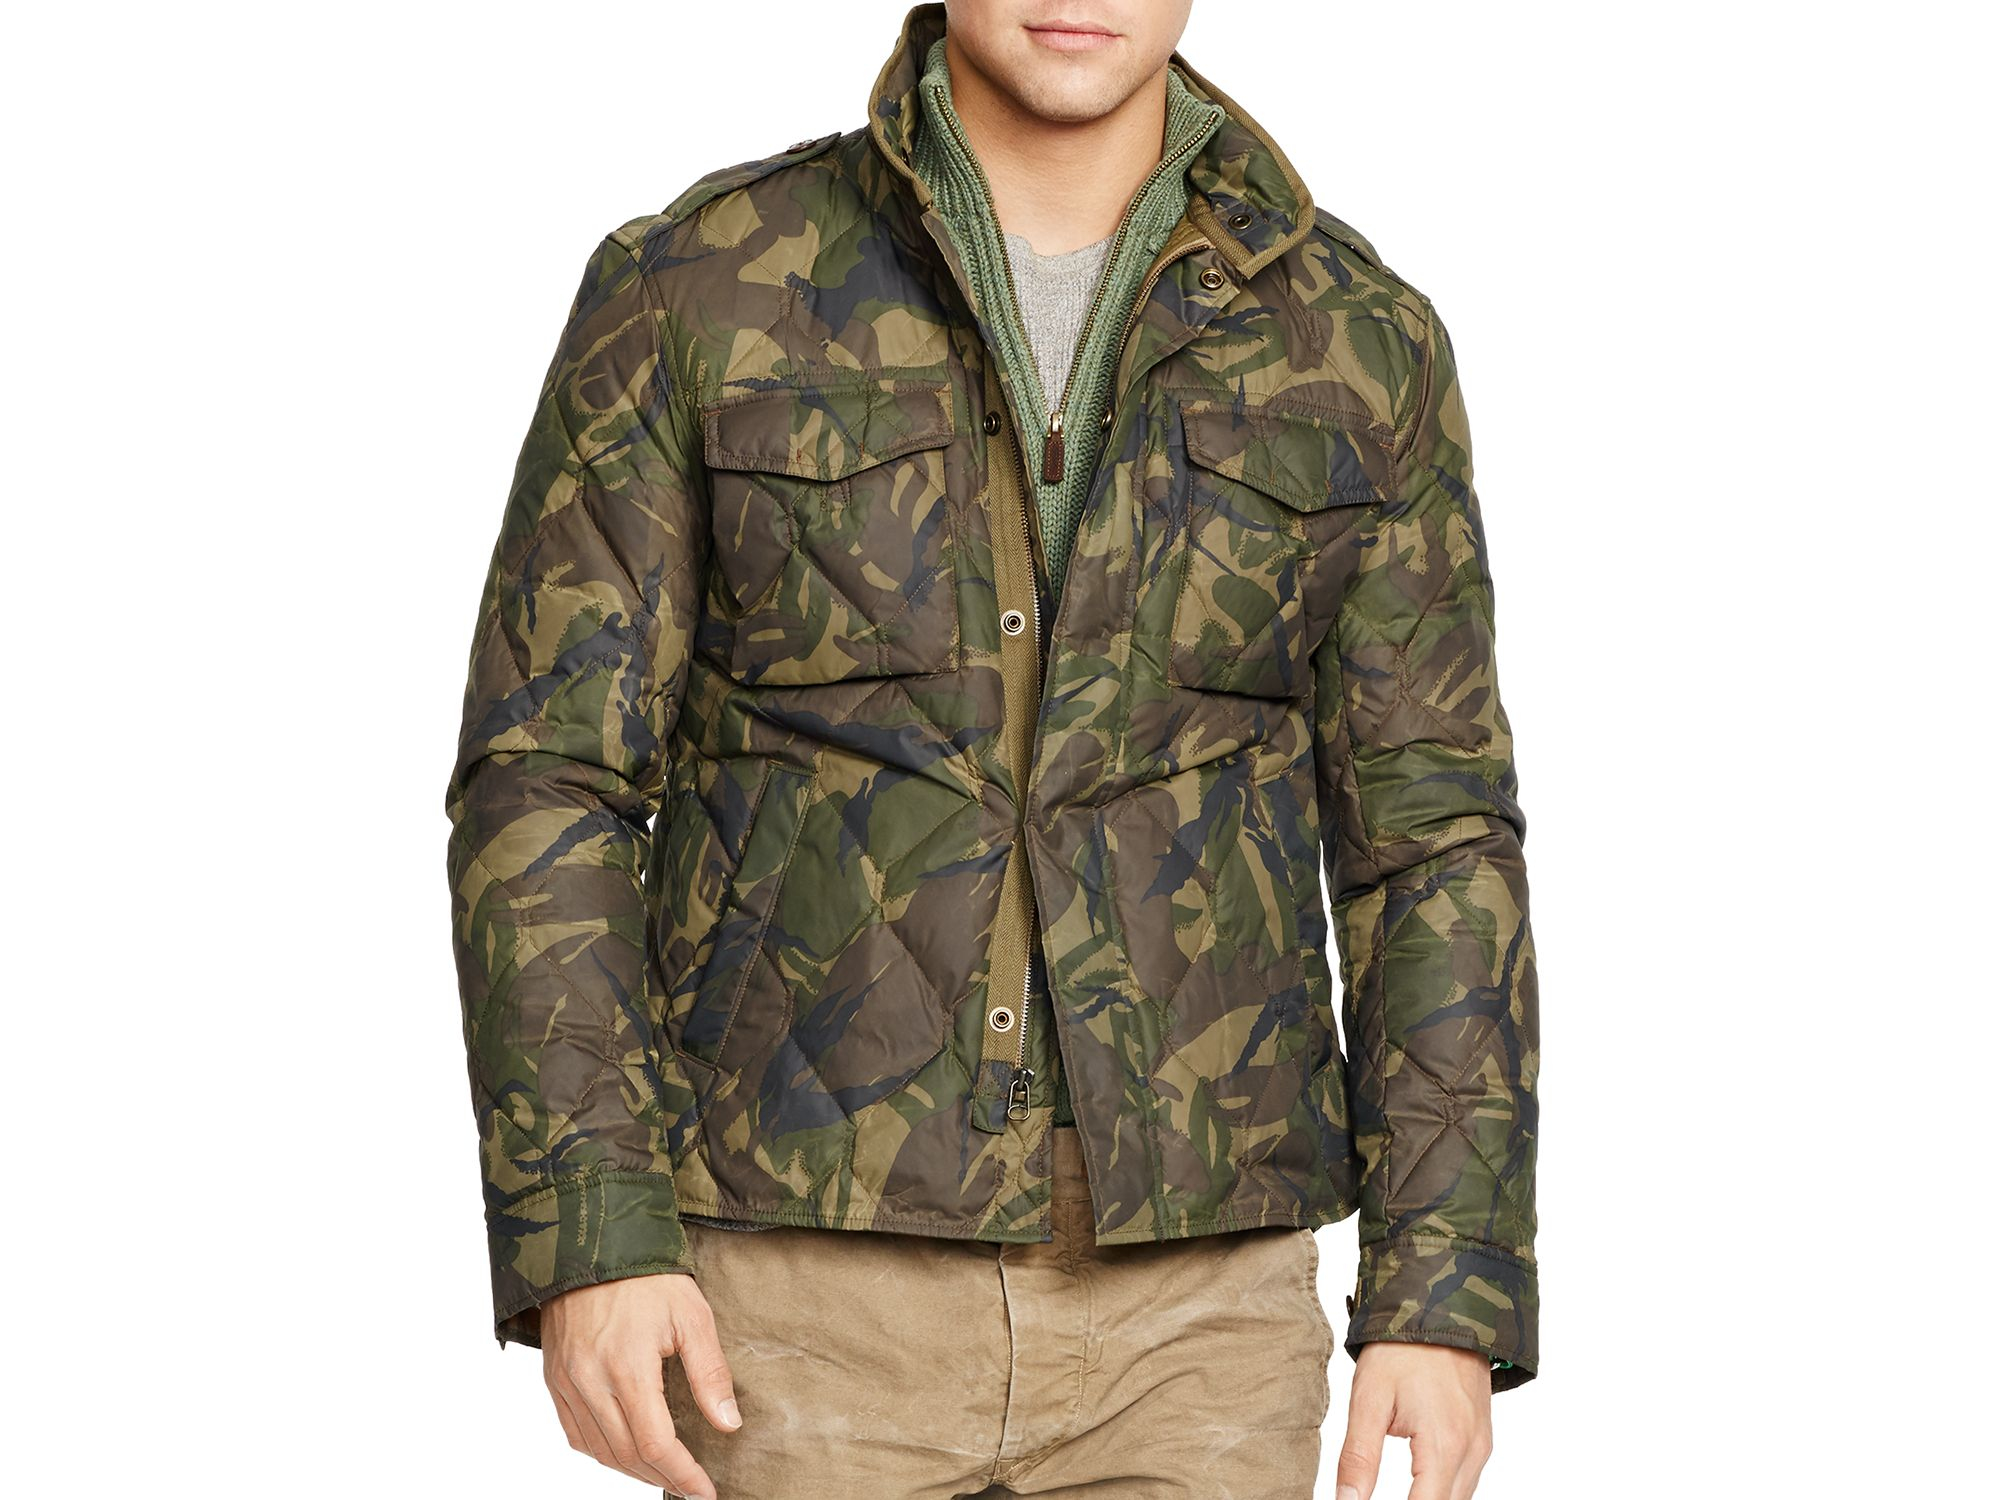 Lyst Ralph Lauren Polo Quilted Camo Print Puffer Shirt Jacket In Green For Men